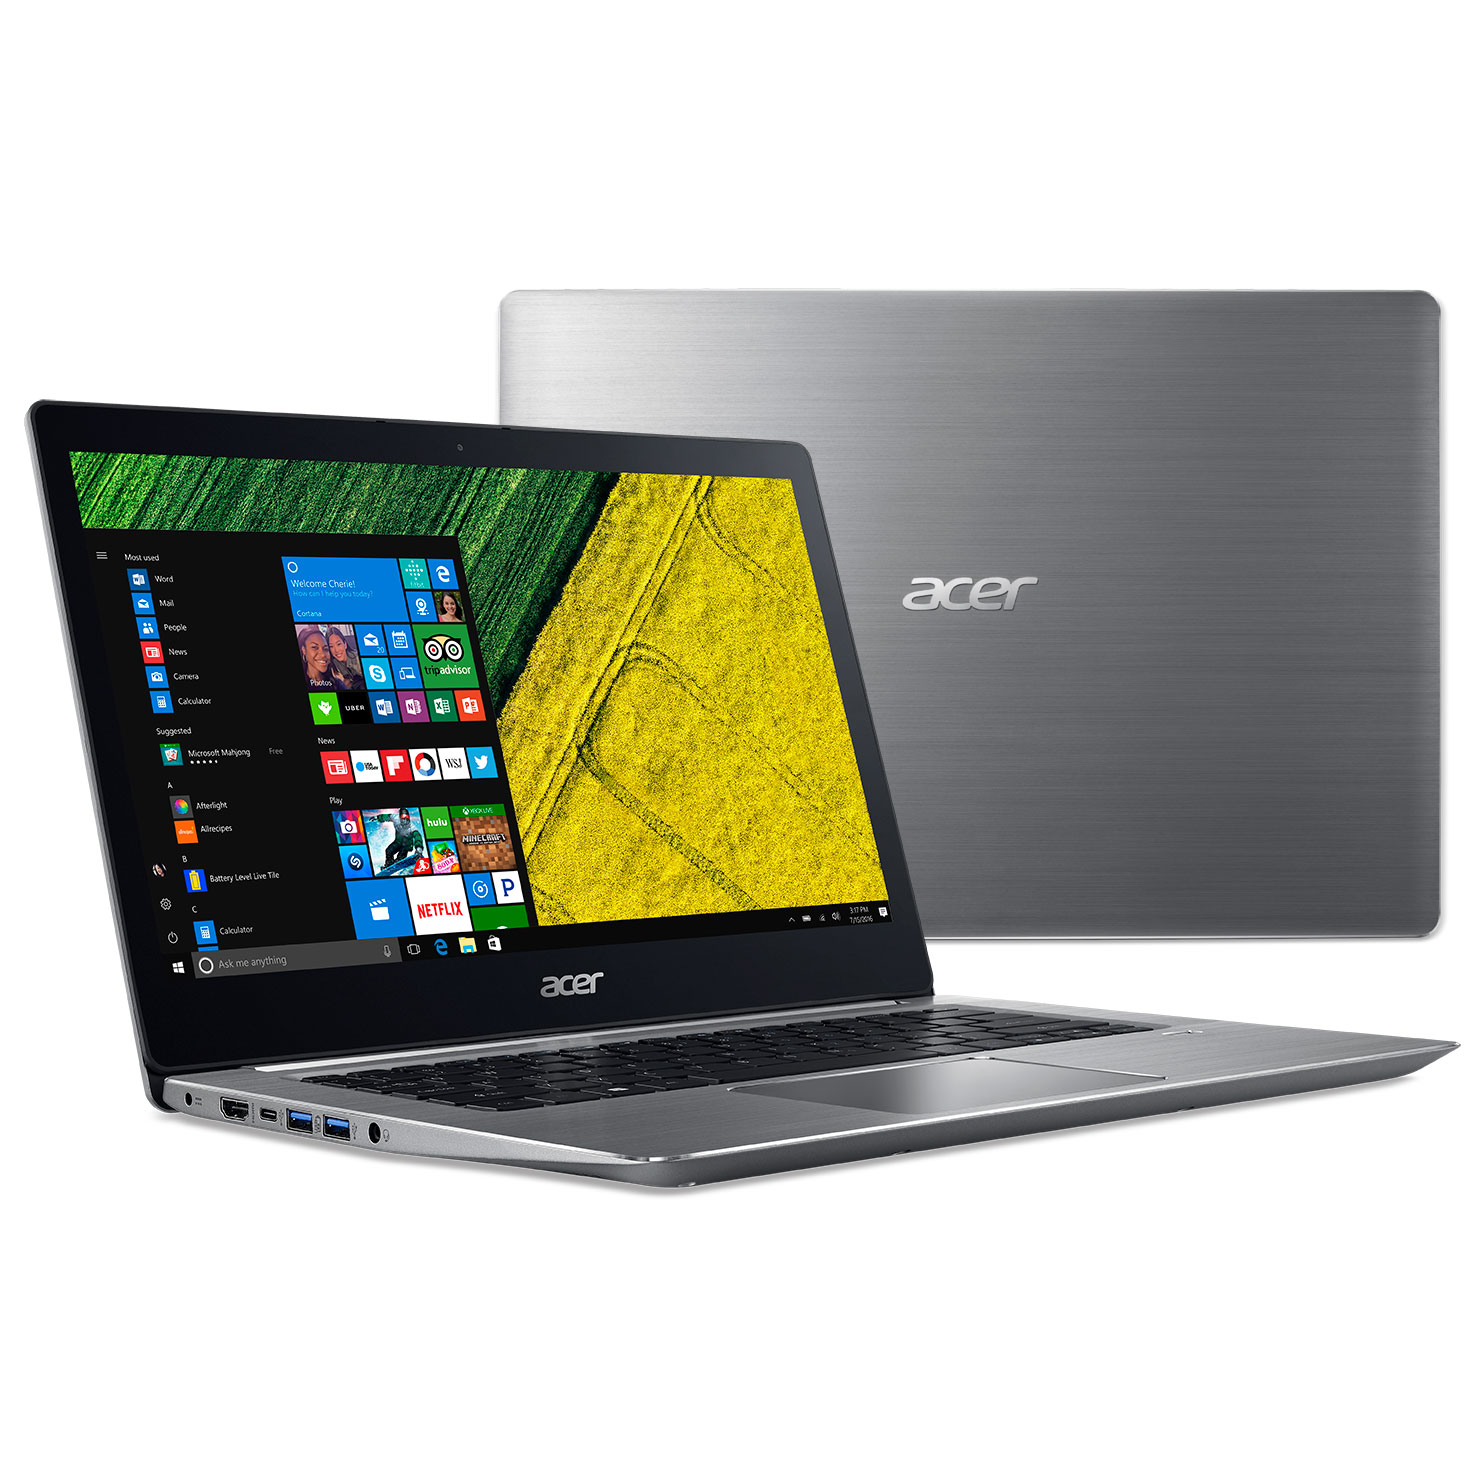 Acer SF314 - 52G - 5079 Notebook Fingerprint Recognition - SILVER